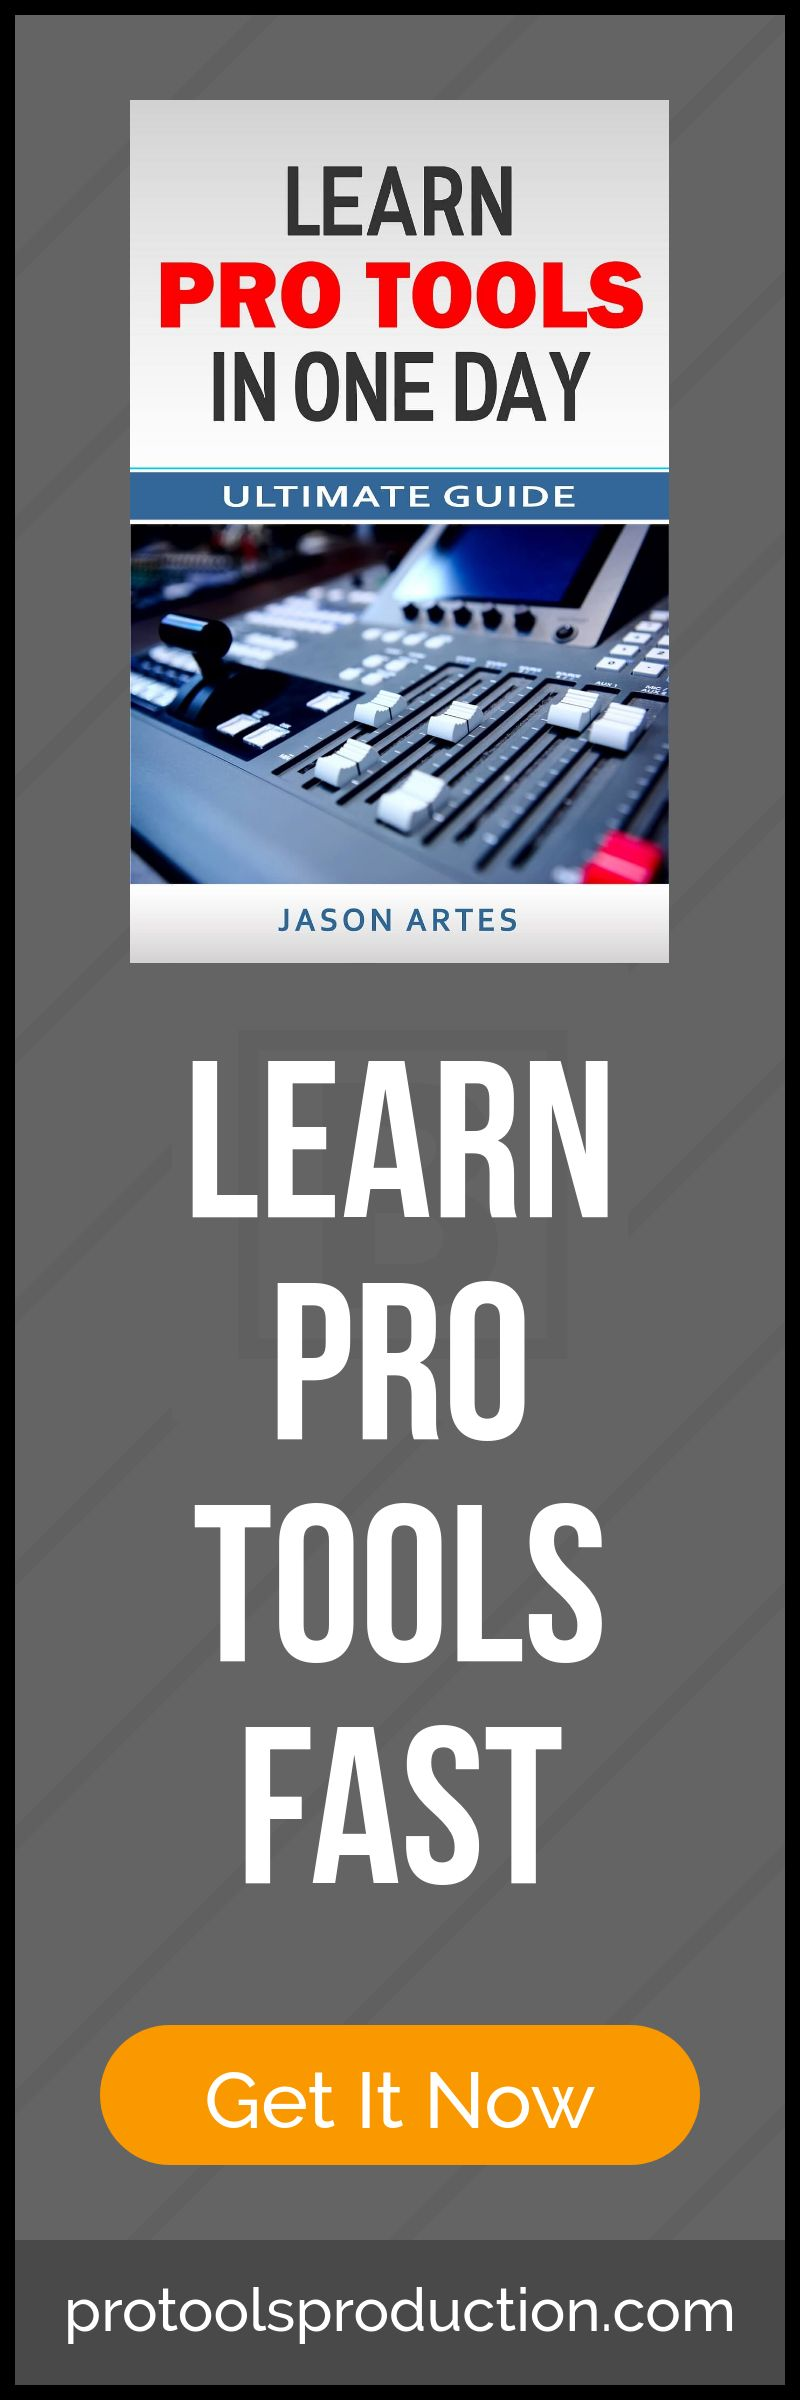 learn pro tools in one day guide